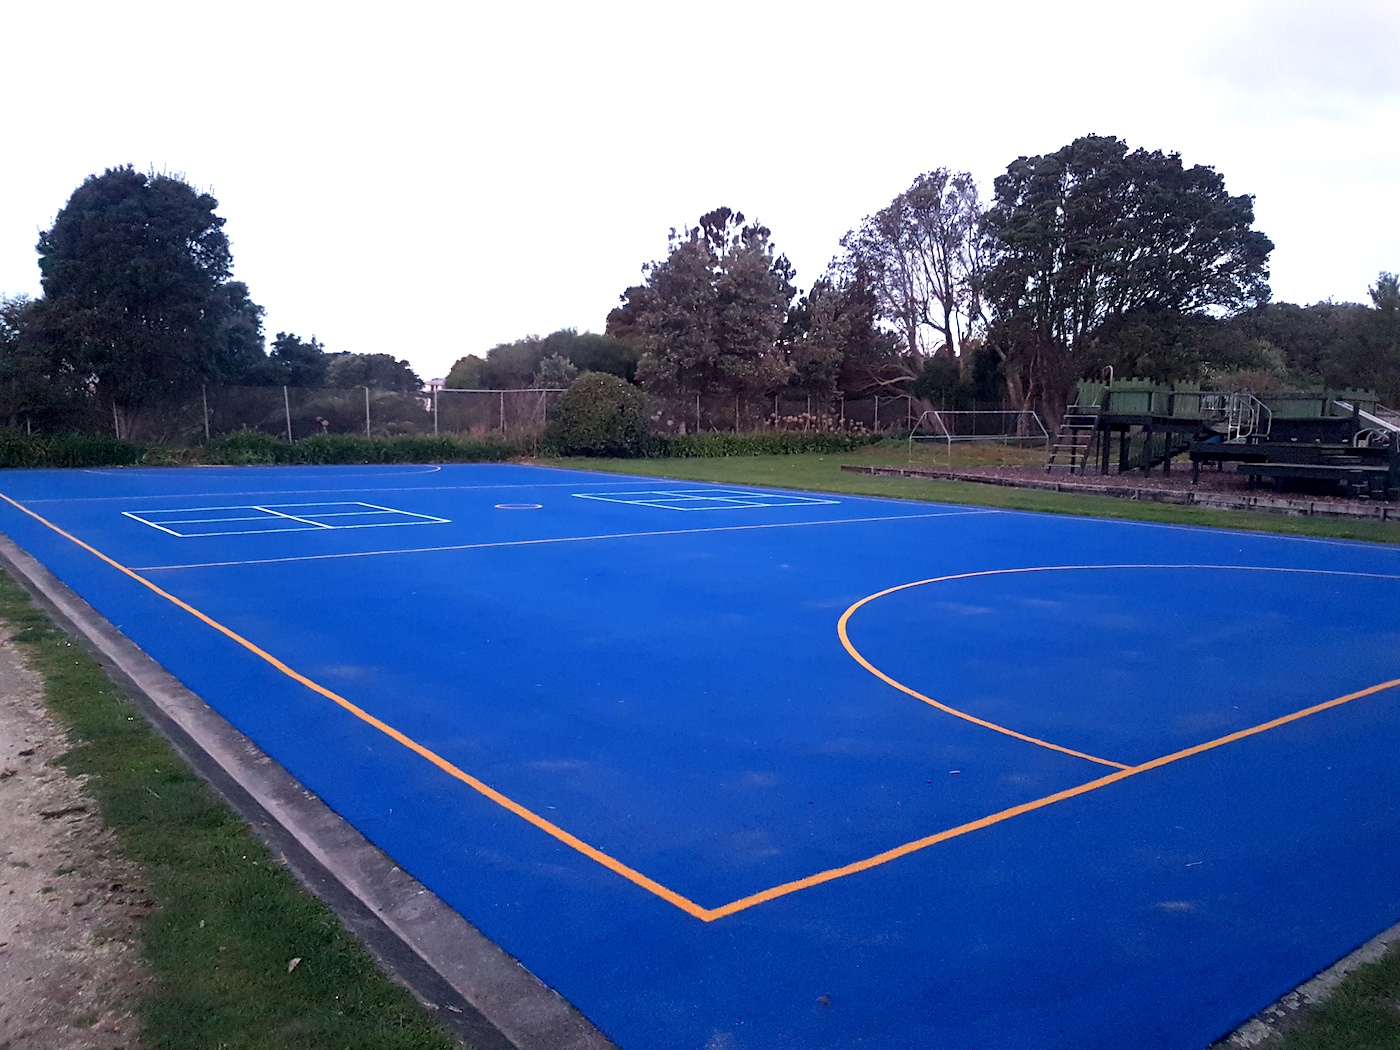 Blue school netball court